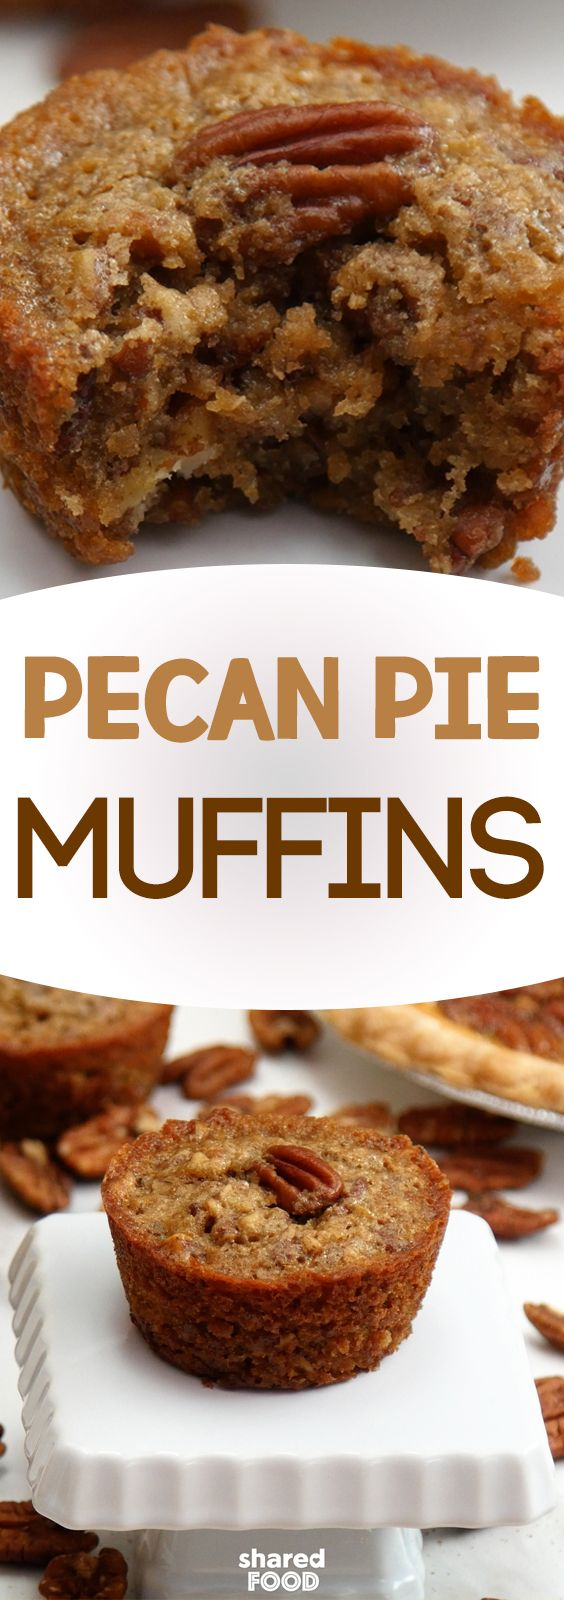 Move over pecan pie, a new king is in town! These Pecan Pie Muffins taste exactly like pie, but they're in deliciously convenient muffin-form! These moist muffins encompass everything you love about pecan pie and more - they make the perfect fall breakfast, snack, or dessert (with some ice cream on the side!). What are you waiting for? Bake up a batch of these easy muffins!